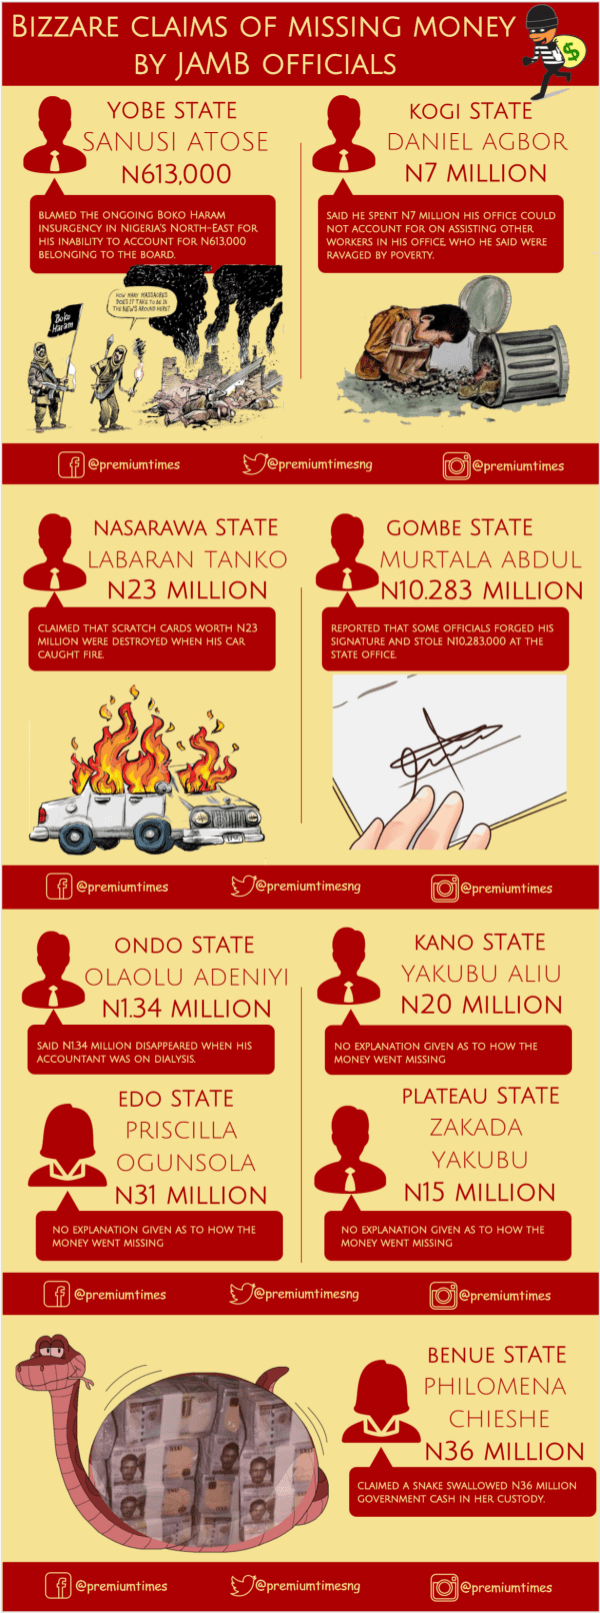 INFOGRAPH - Bizzare claims of missing money by JAMB officials